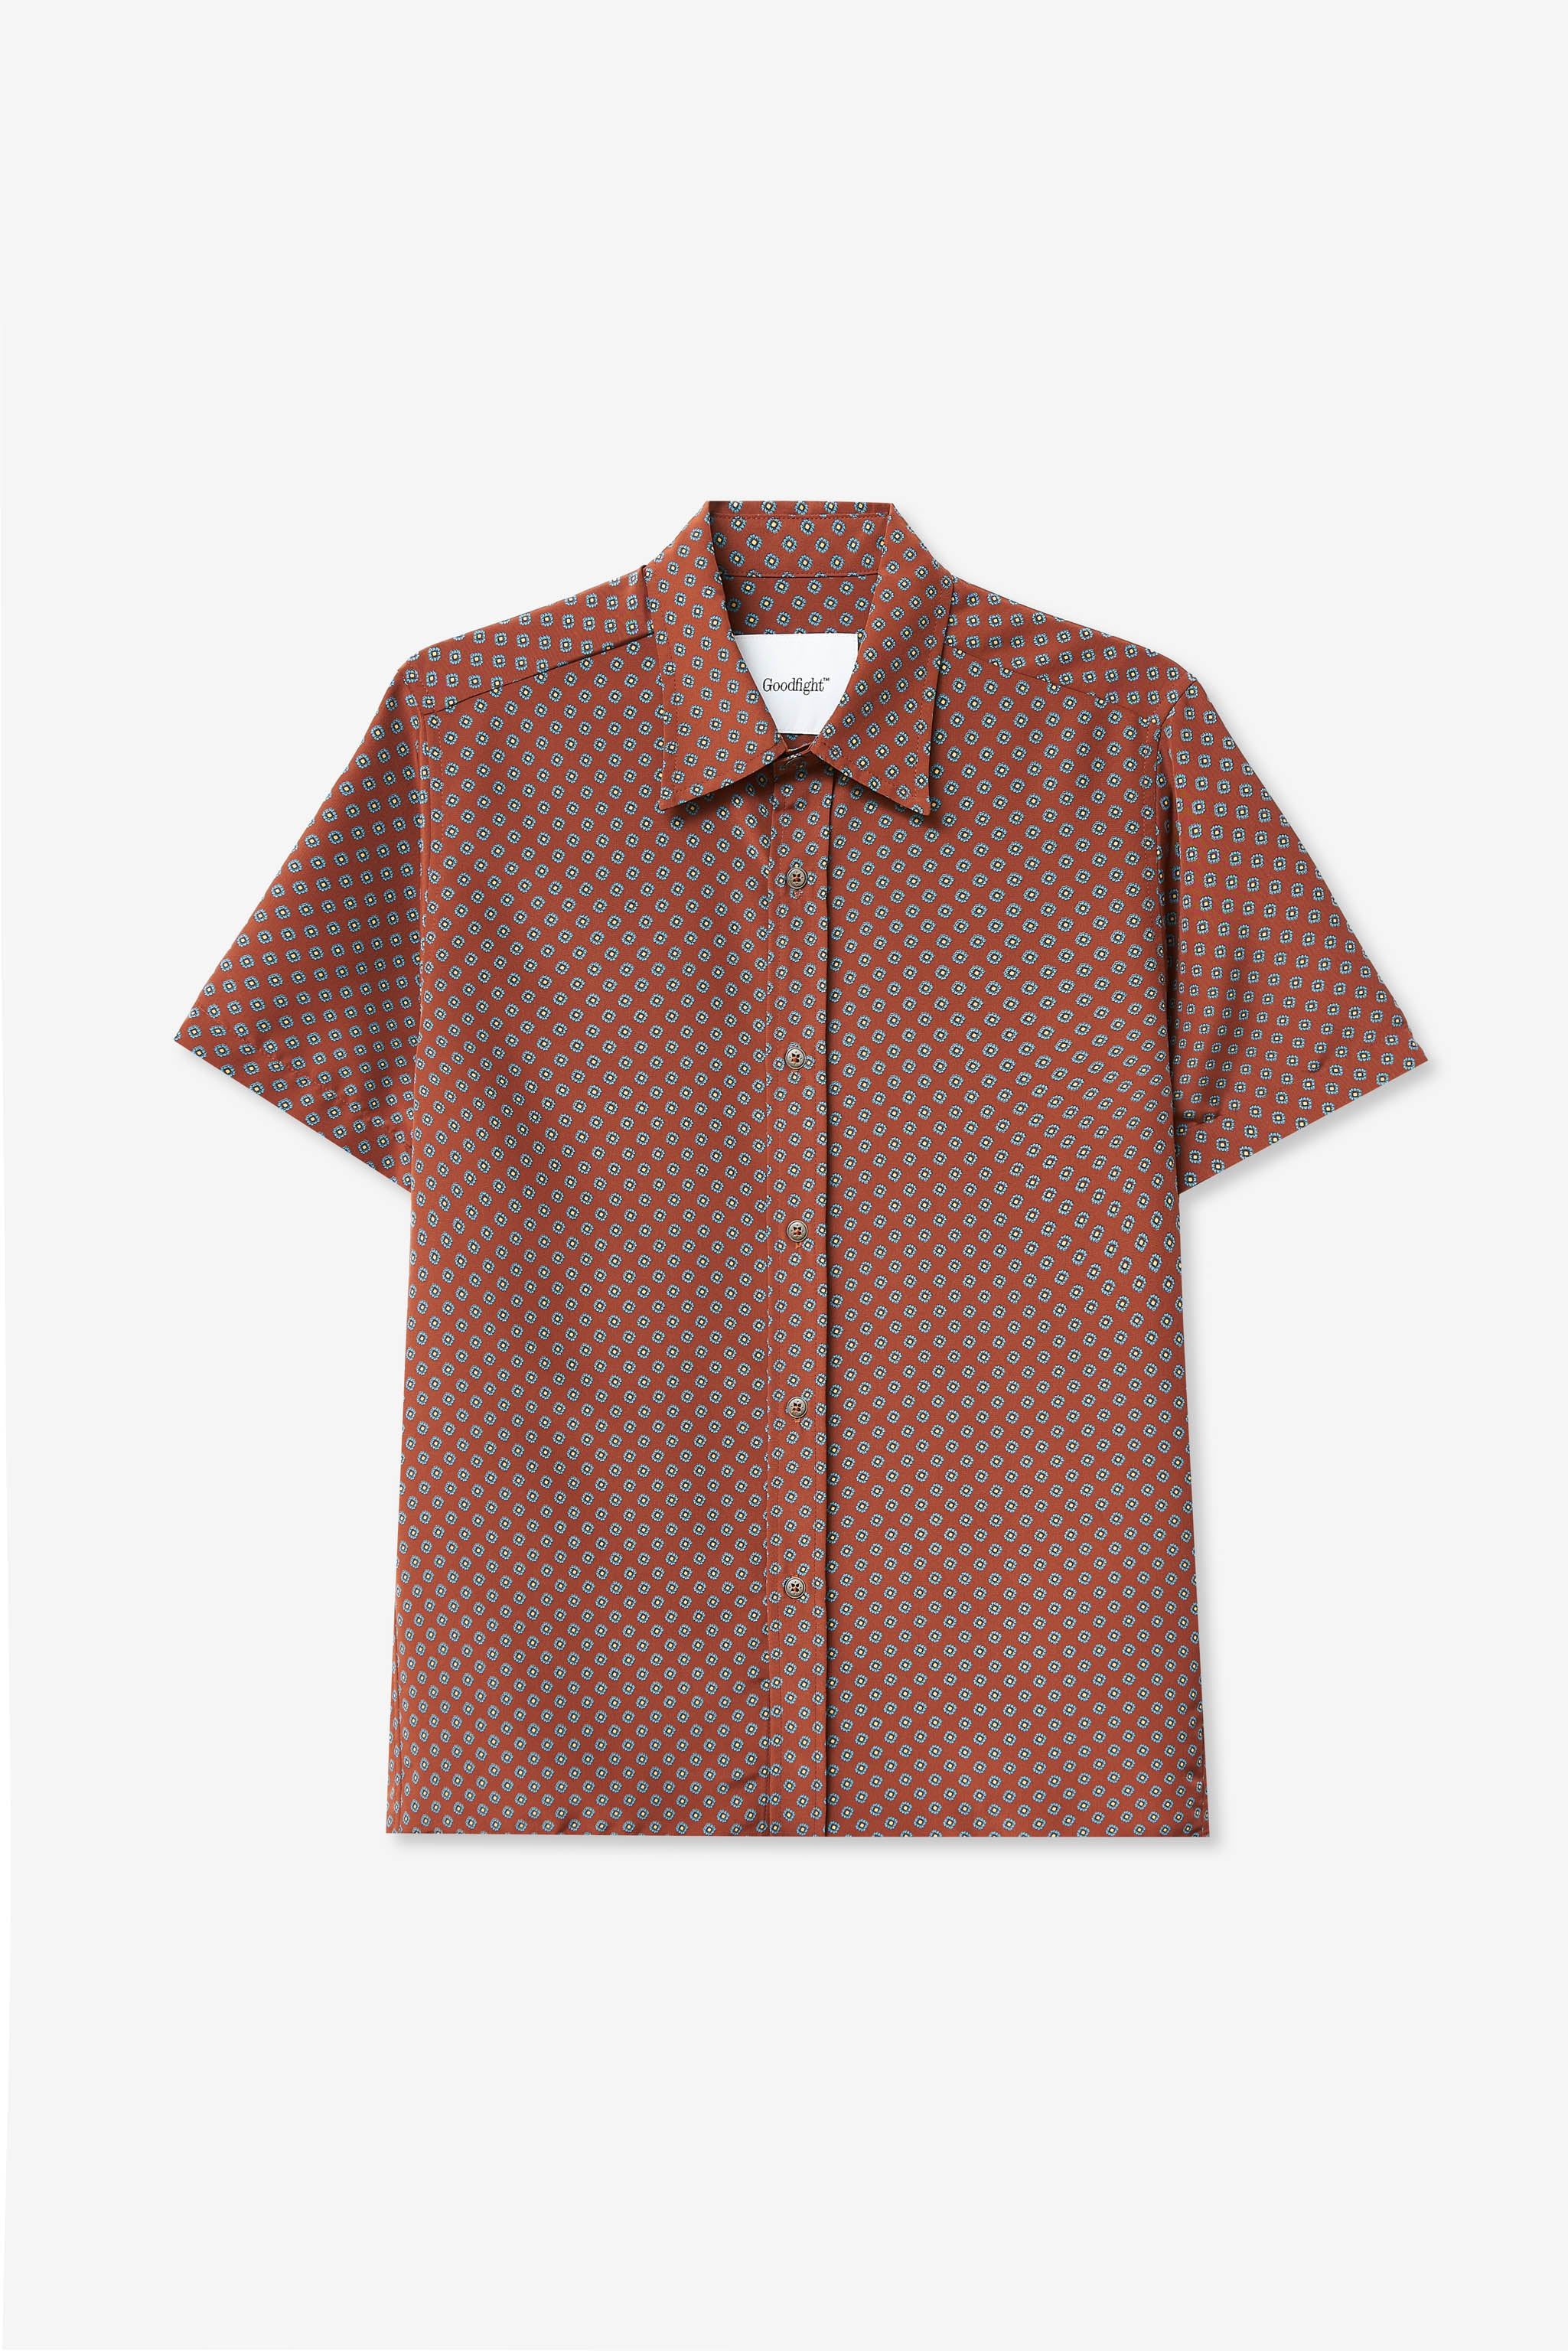 Goodfight Orchard Shirt Brown